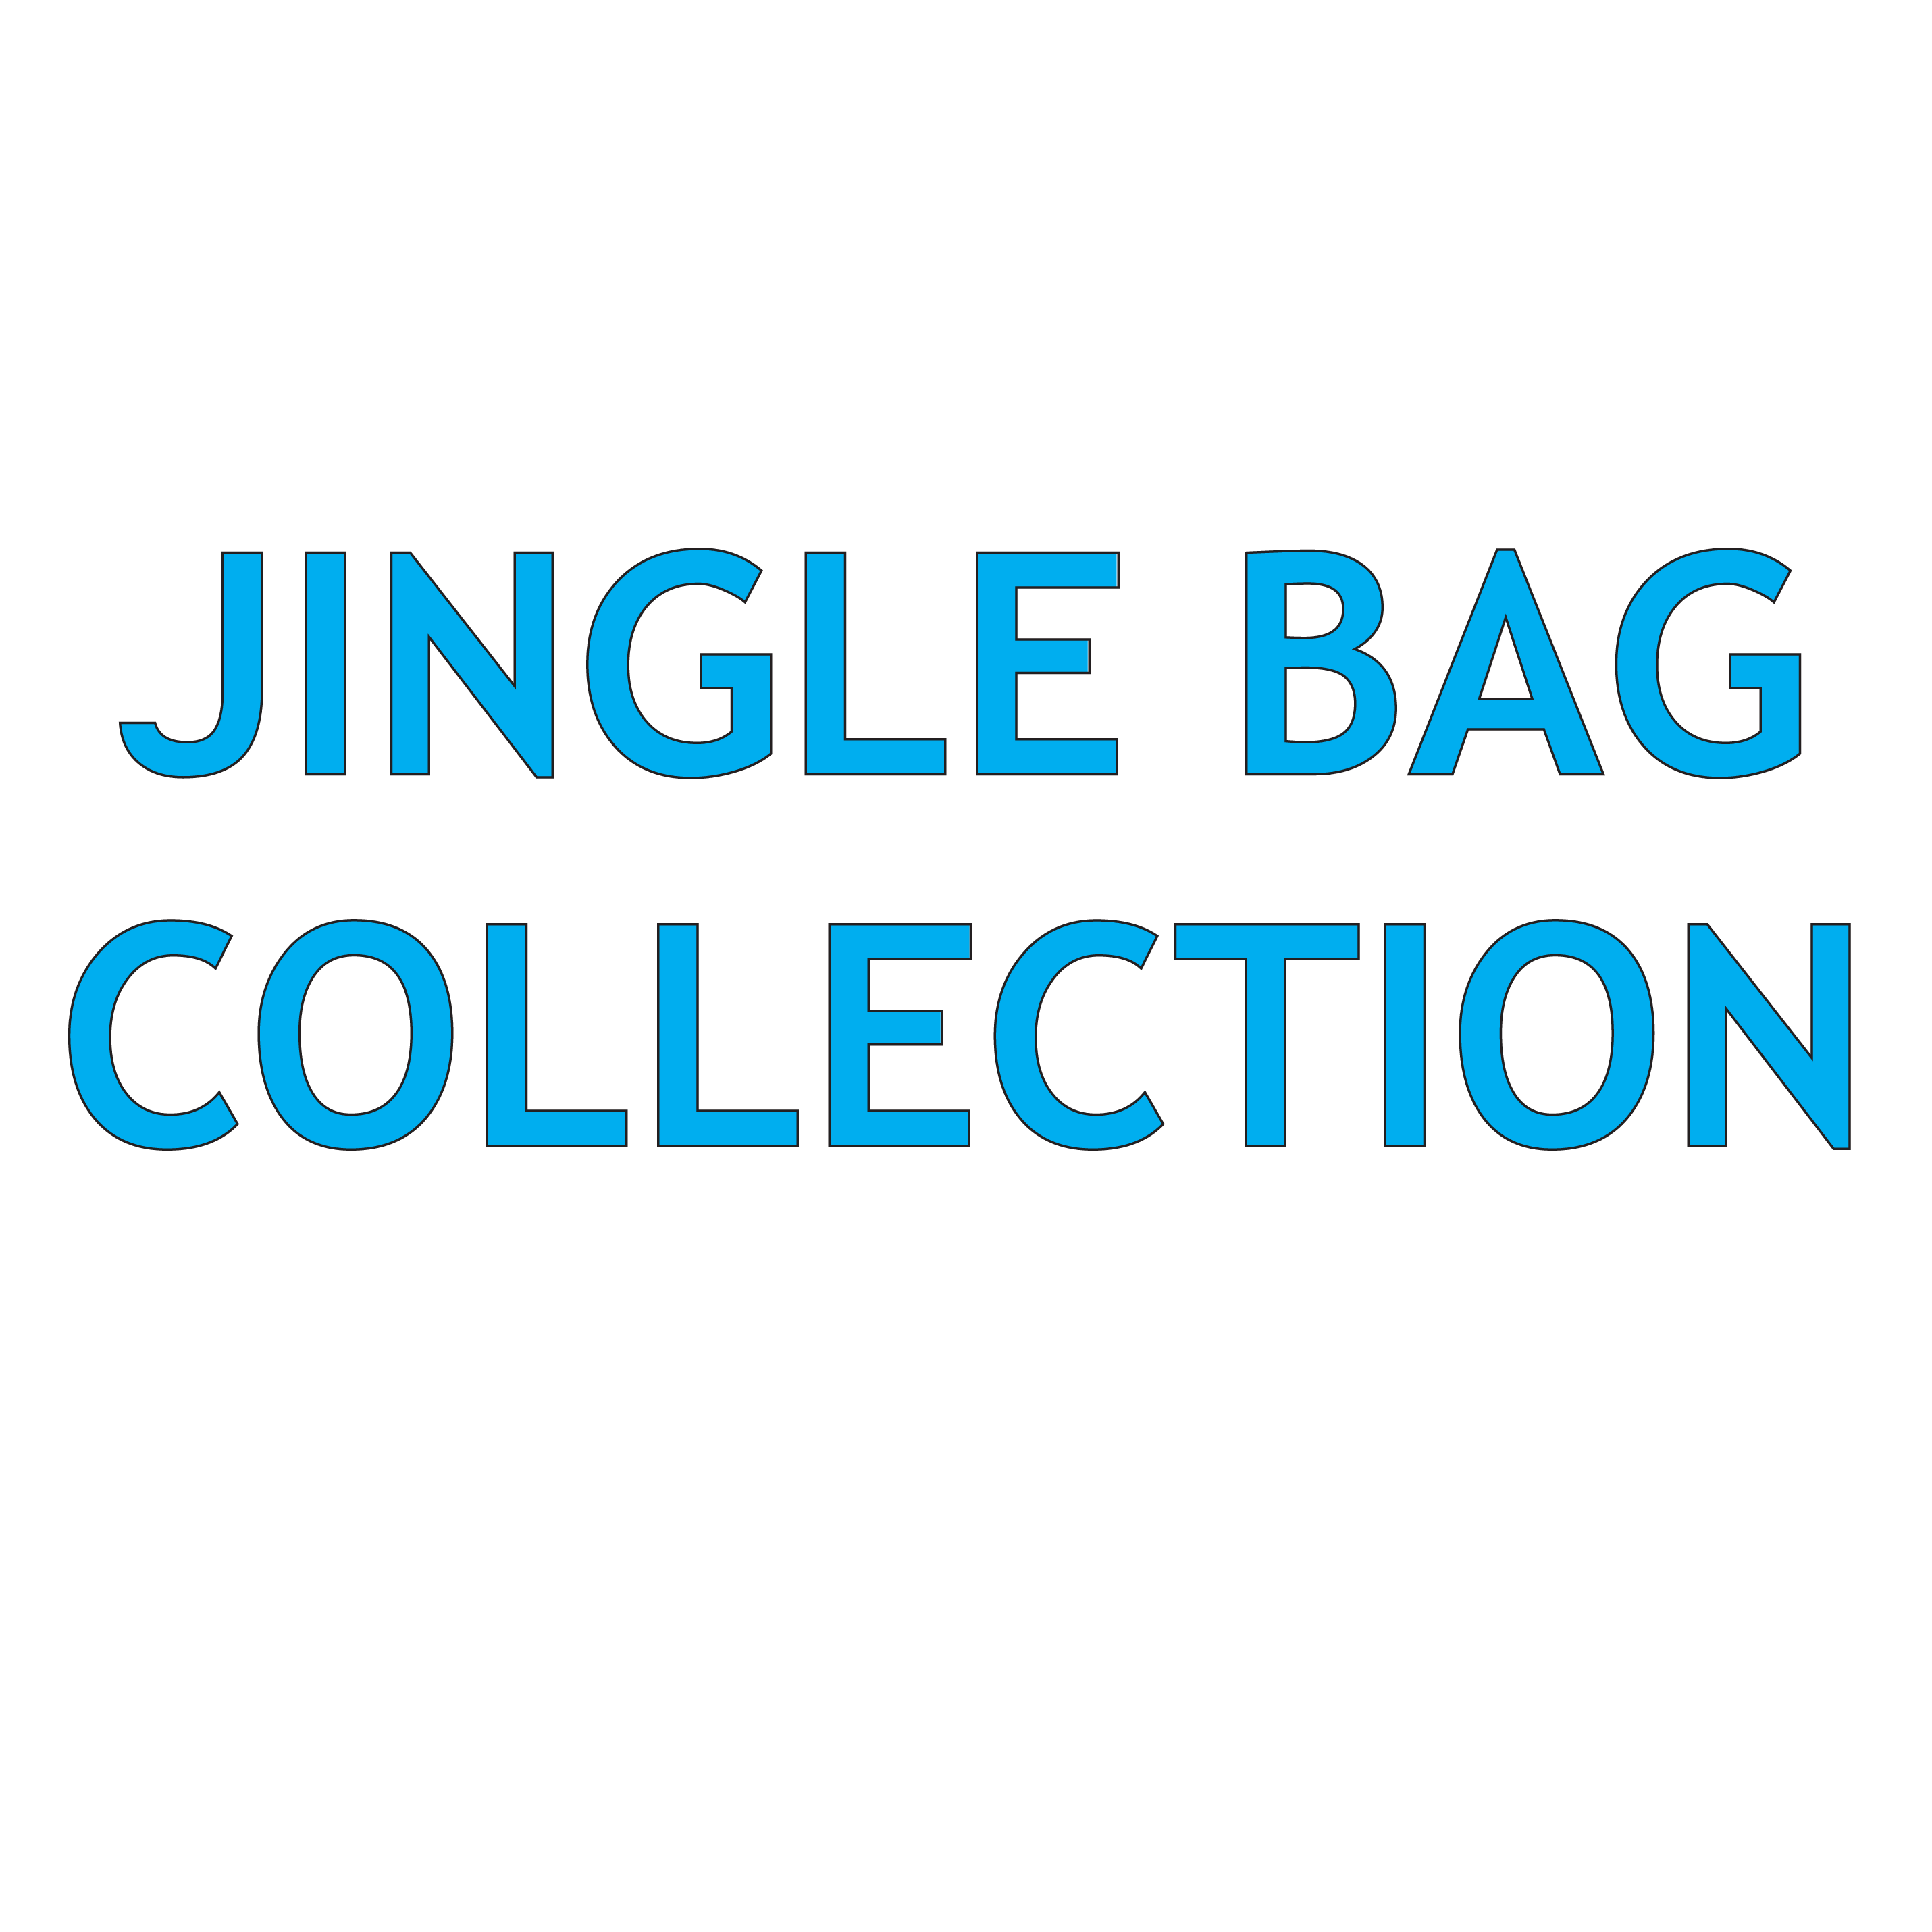 JINGLE BAG COLLECTION